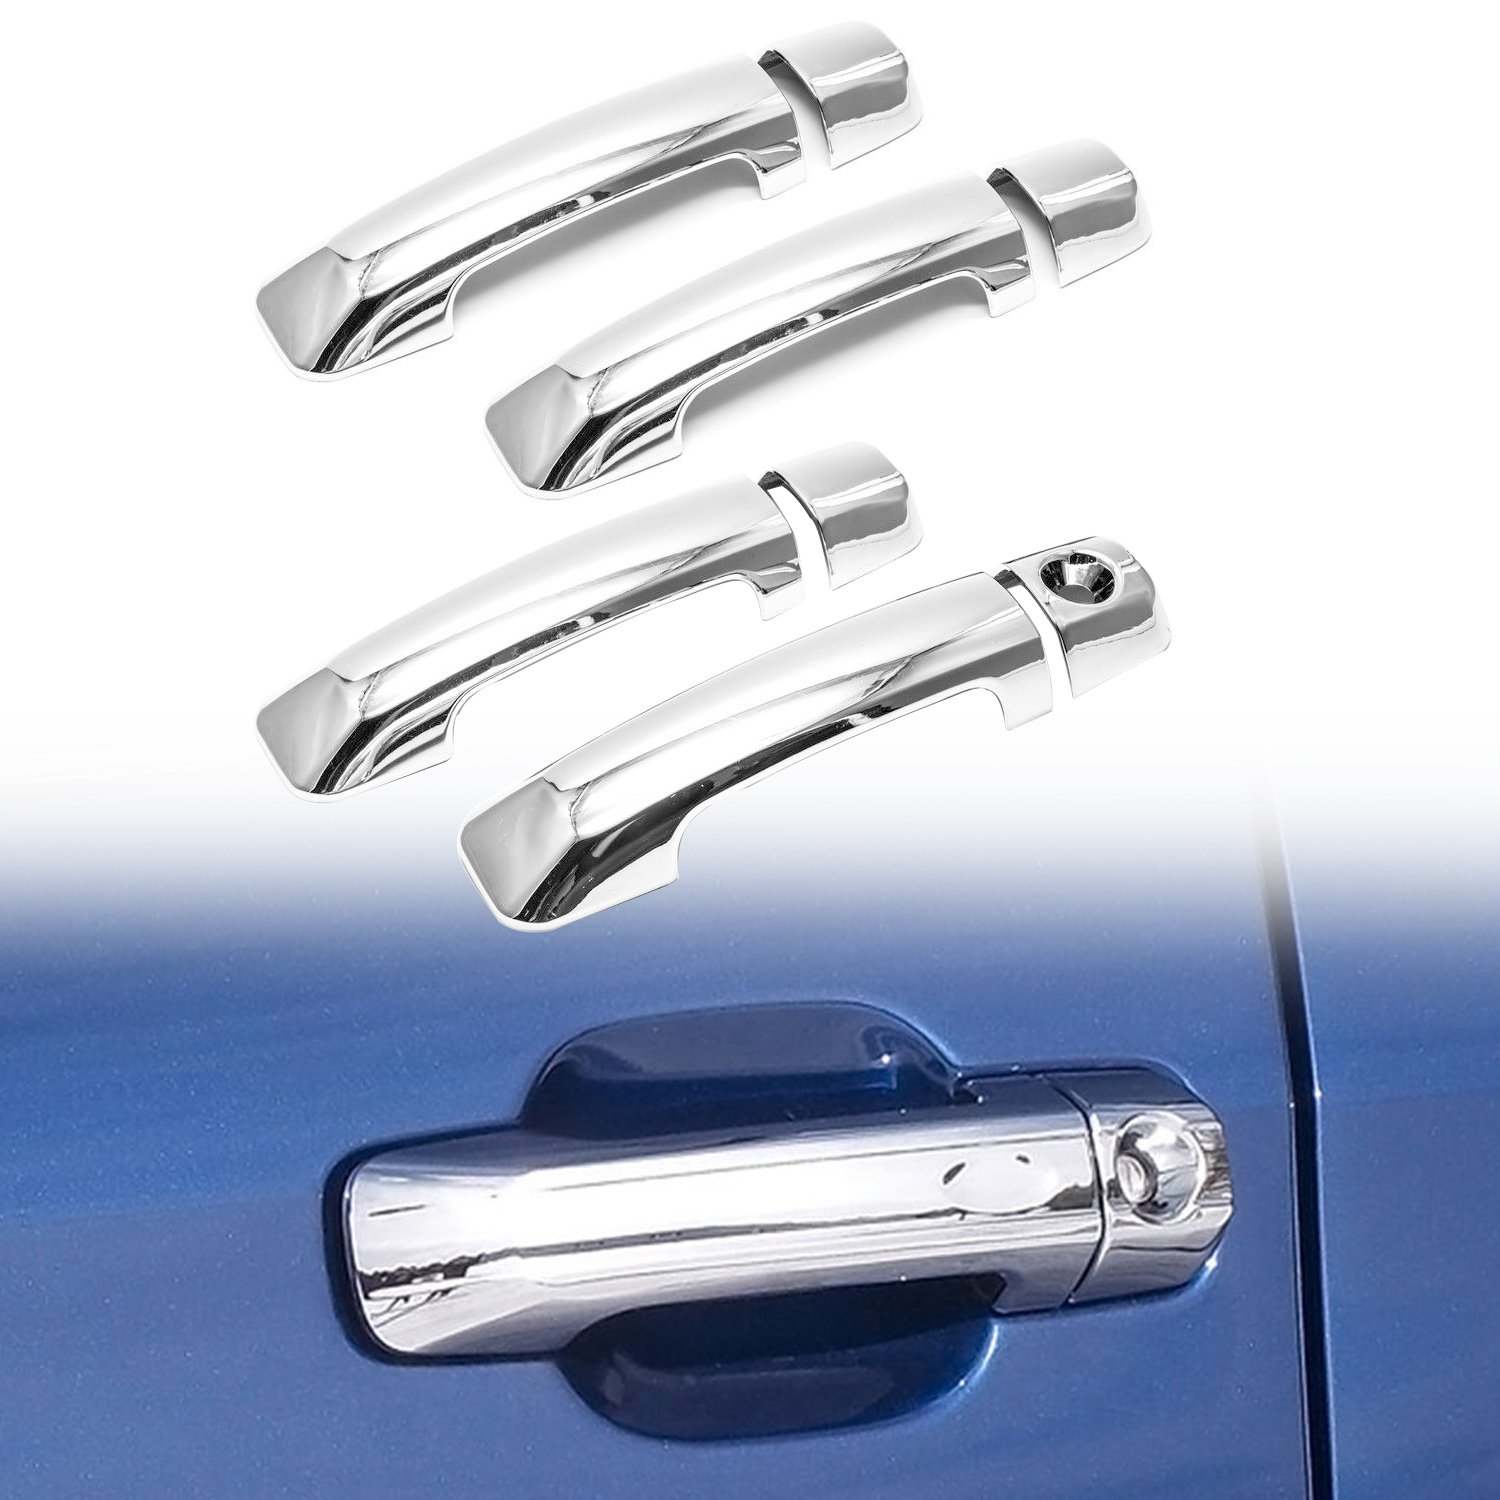 E-Autogrilles Triple Chrome Plated ABS 4 Door Handle Cover without Passenger Side Keyhole for 07-16 Toyota Tundra Crew Max / 08-16 Toyota Sequoia (64-0511)